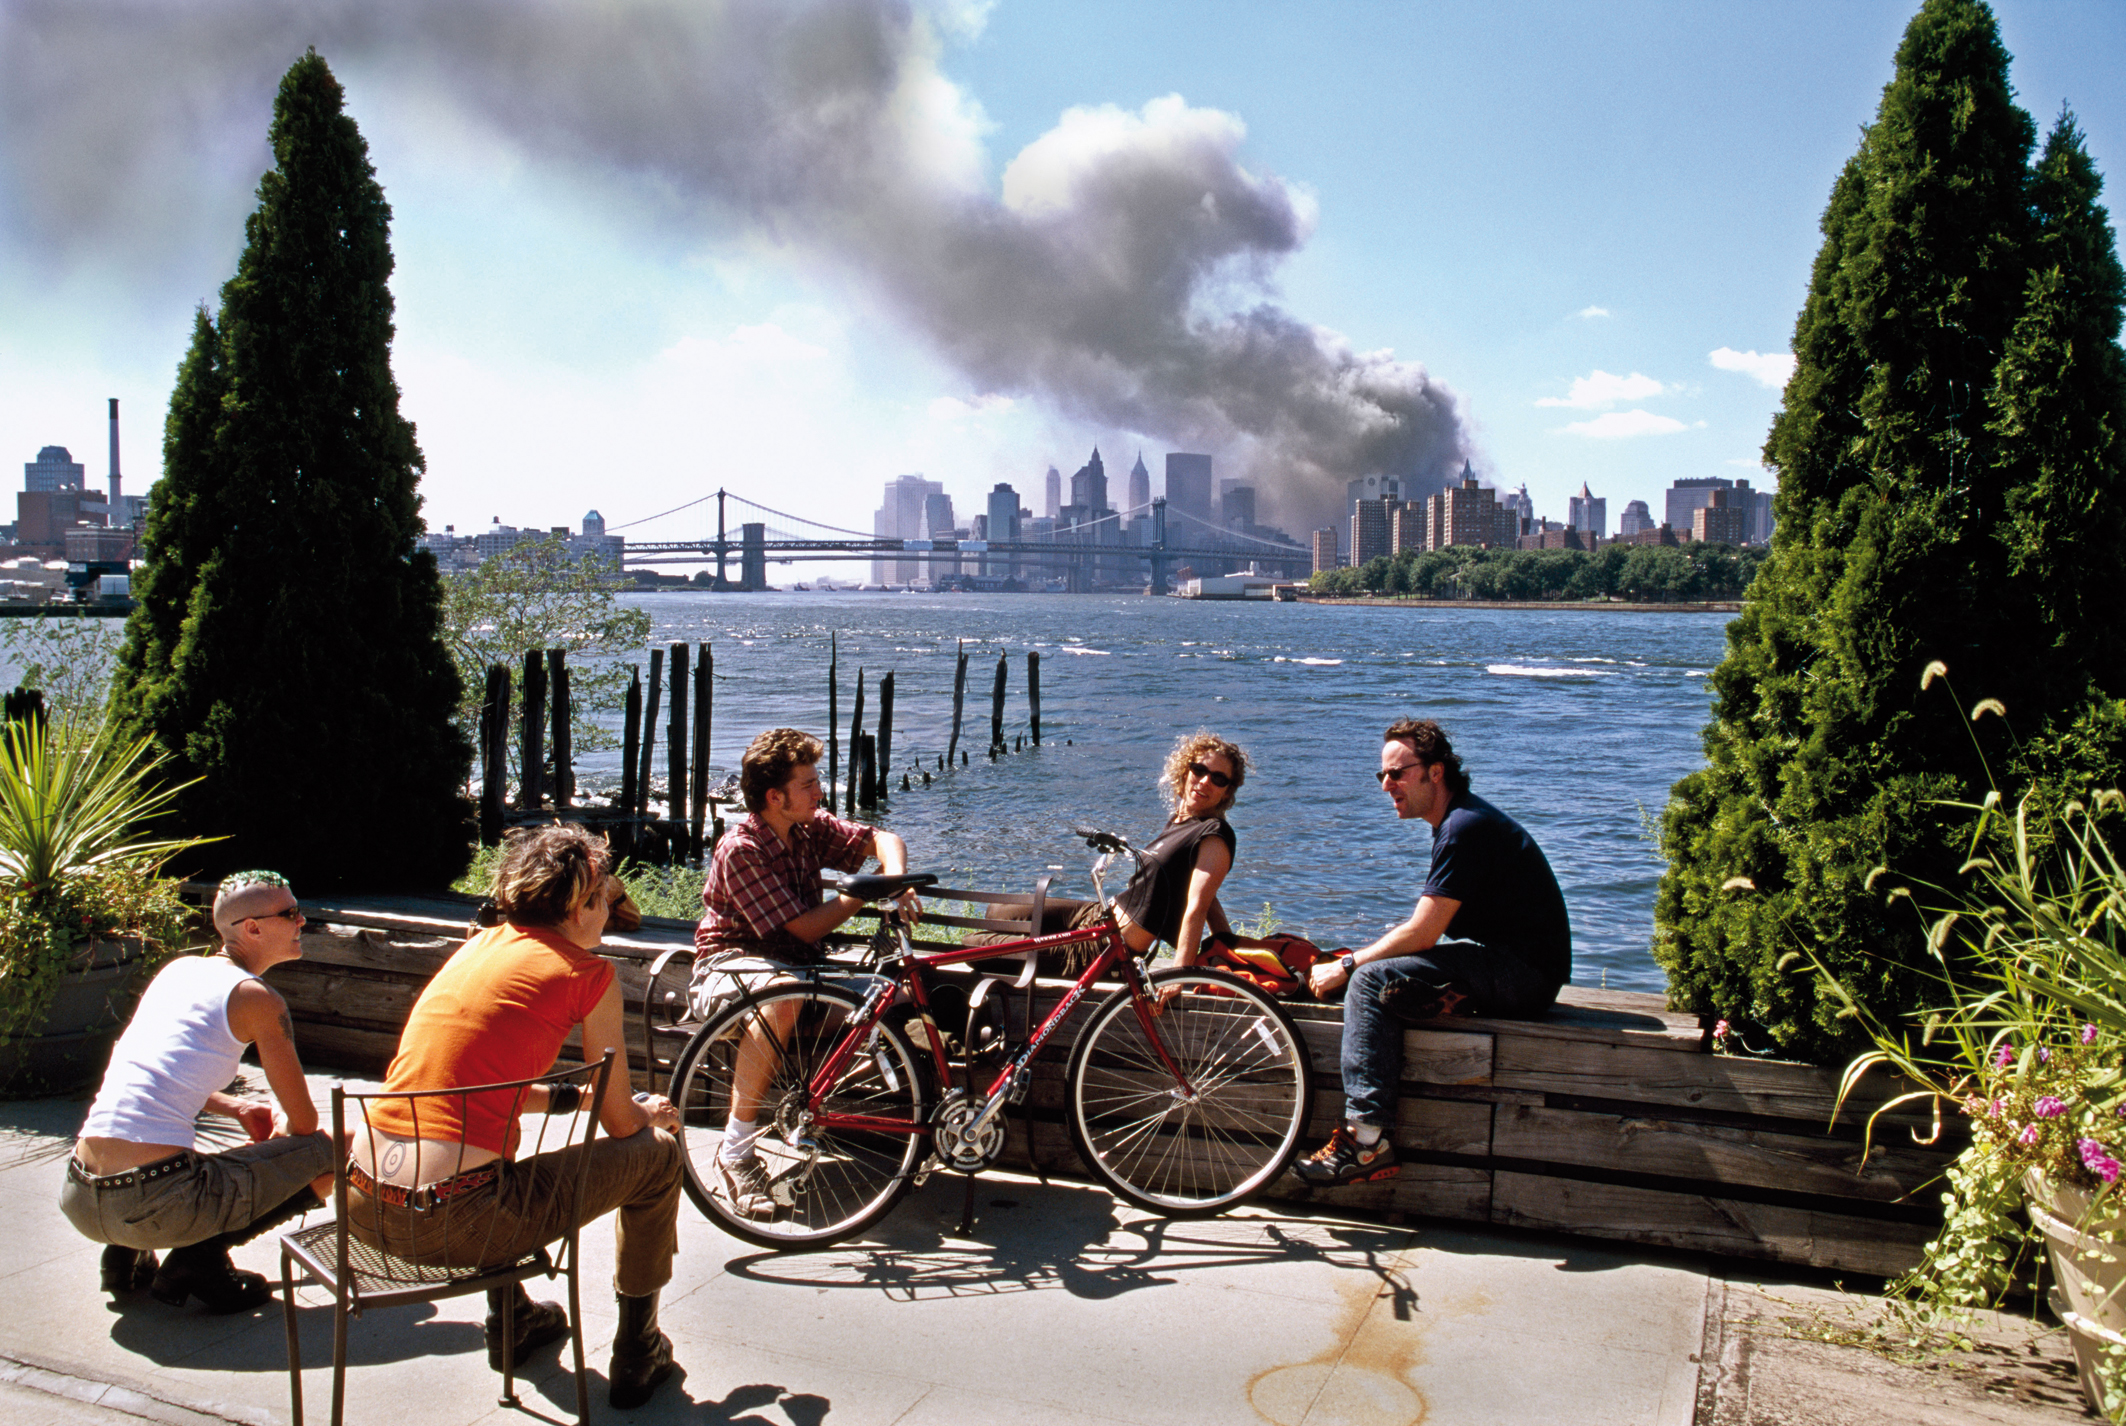 How september 11th changed american culture essay